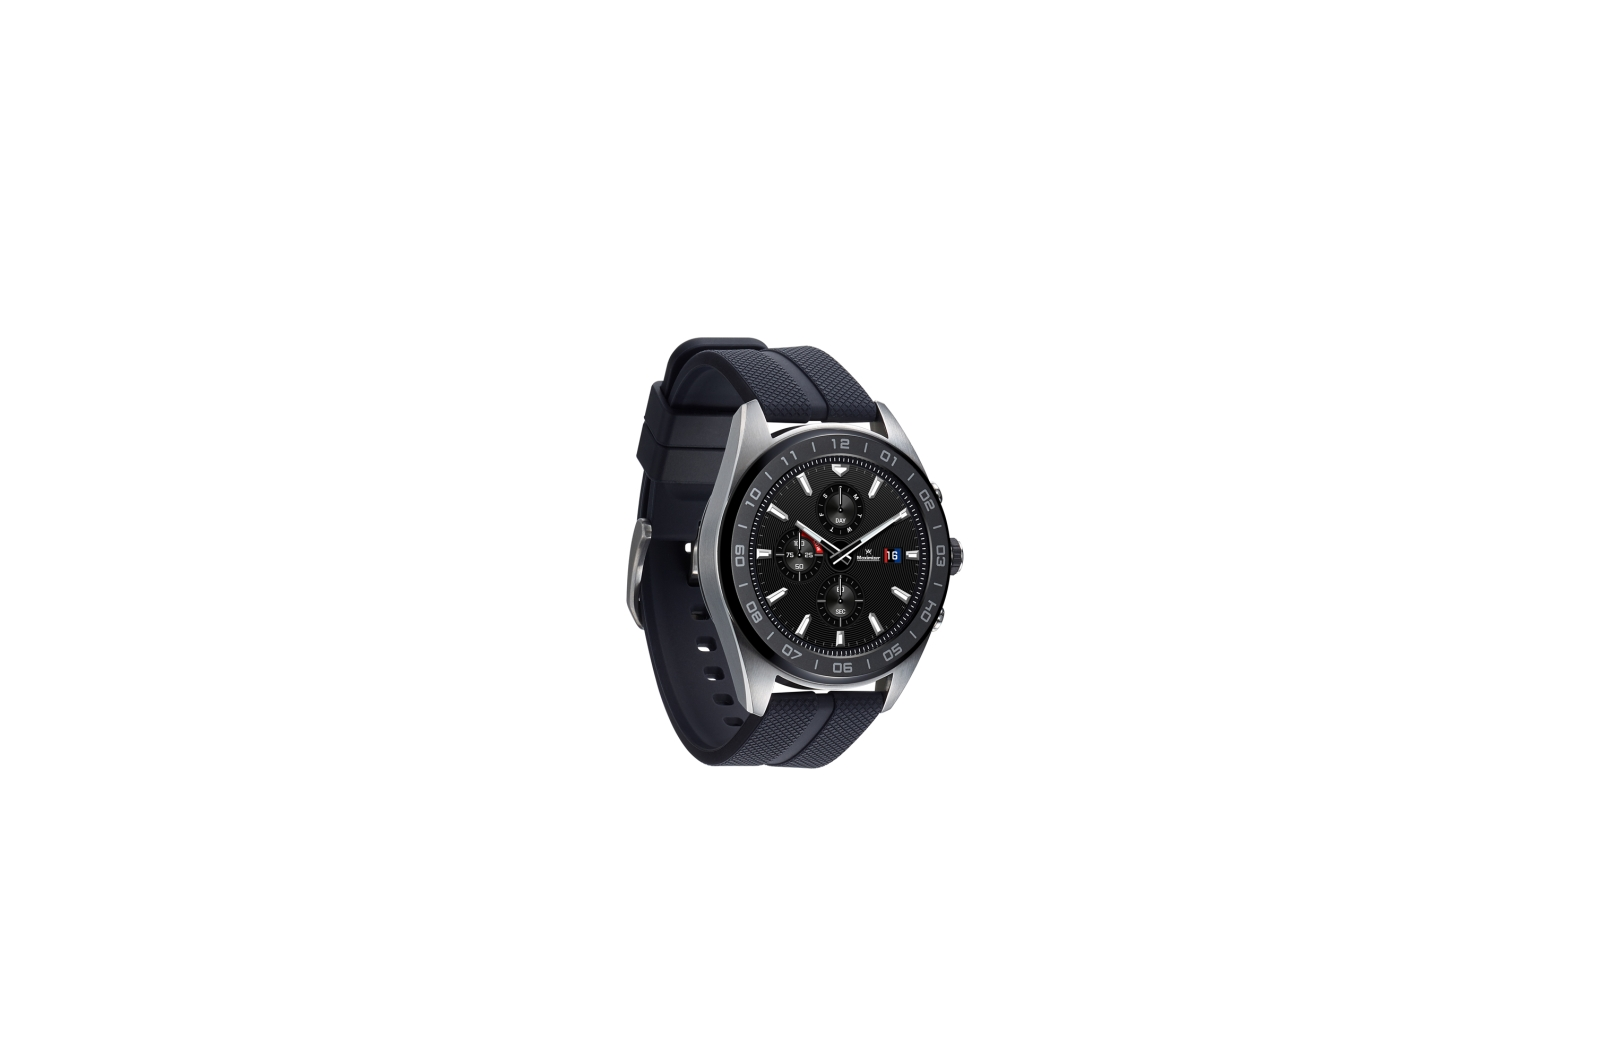 lg watch w7 full specs